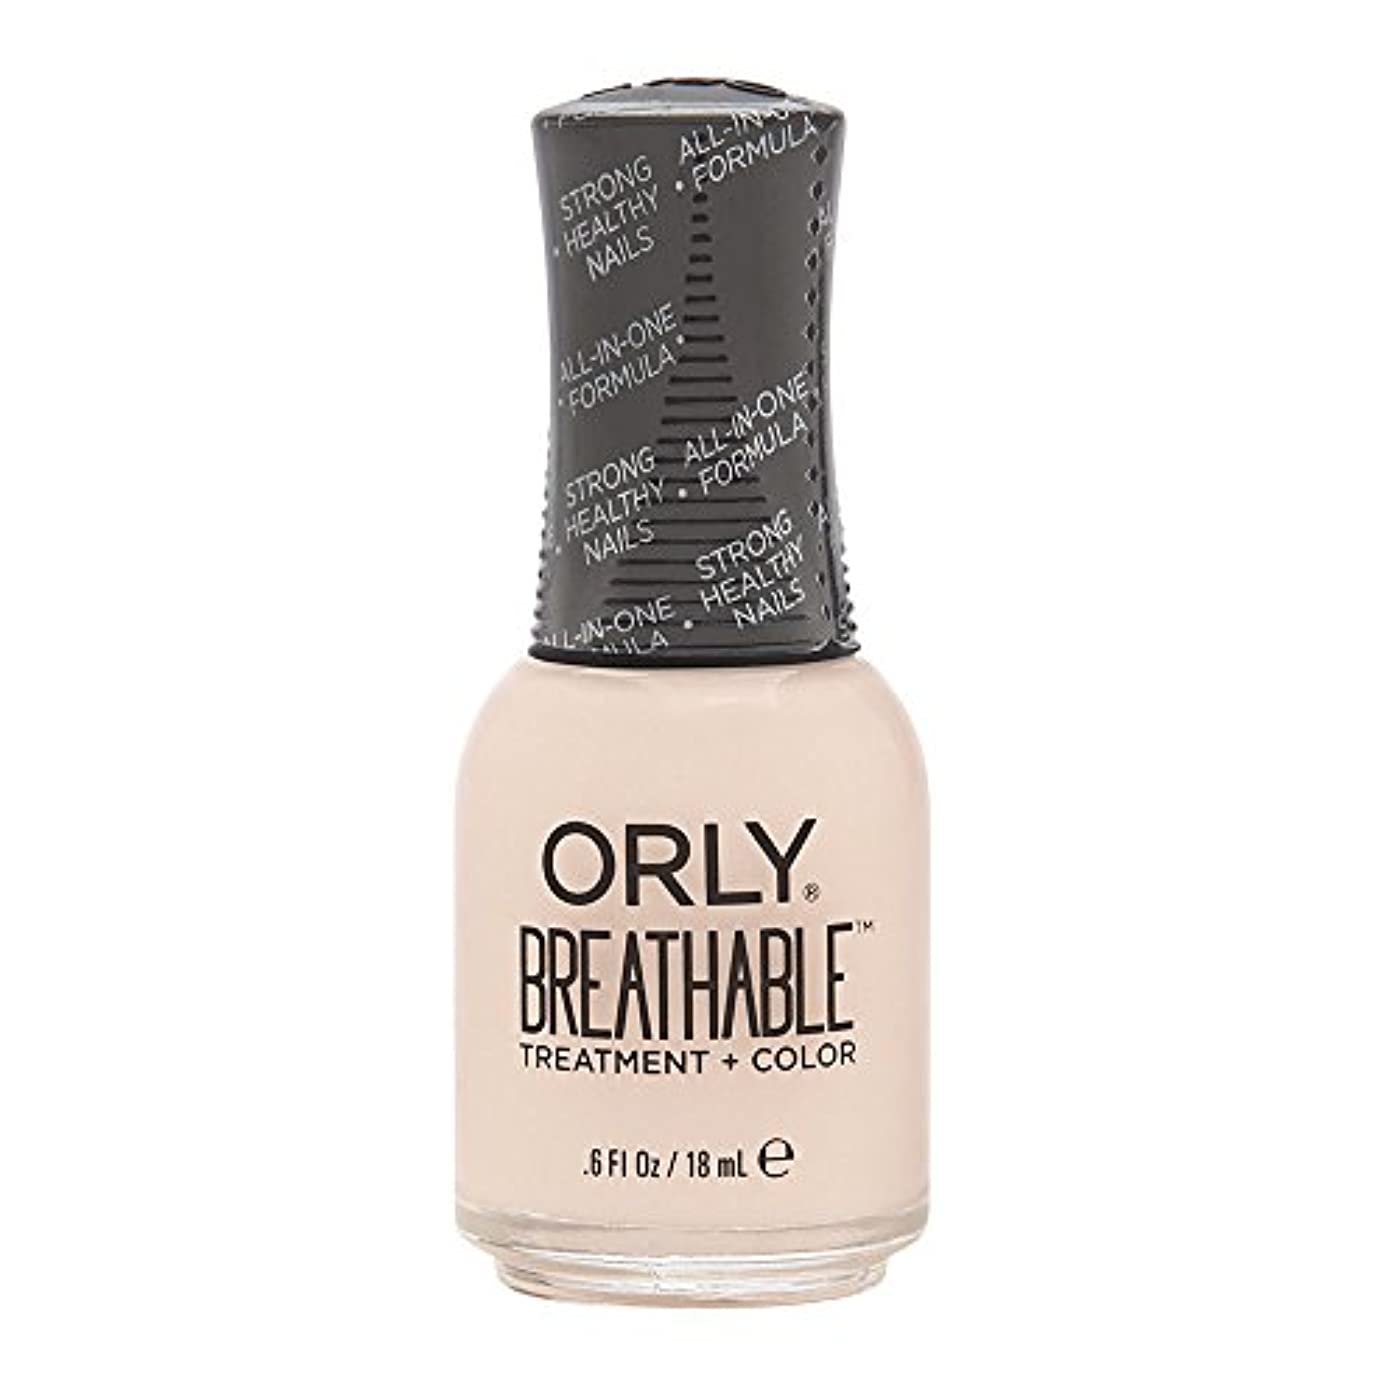 真珠のような俳優胚芽Orly Breathable Treatment + Color Nail Lacquer - Rehab - 0.6oz / 18ml